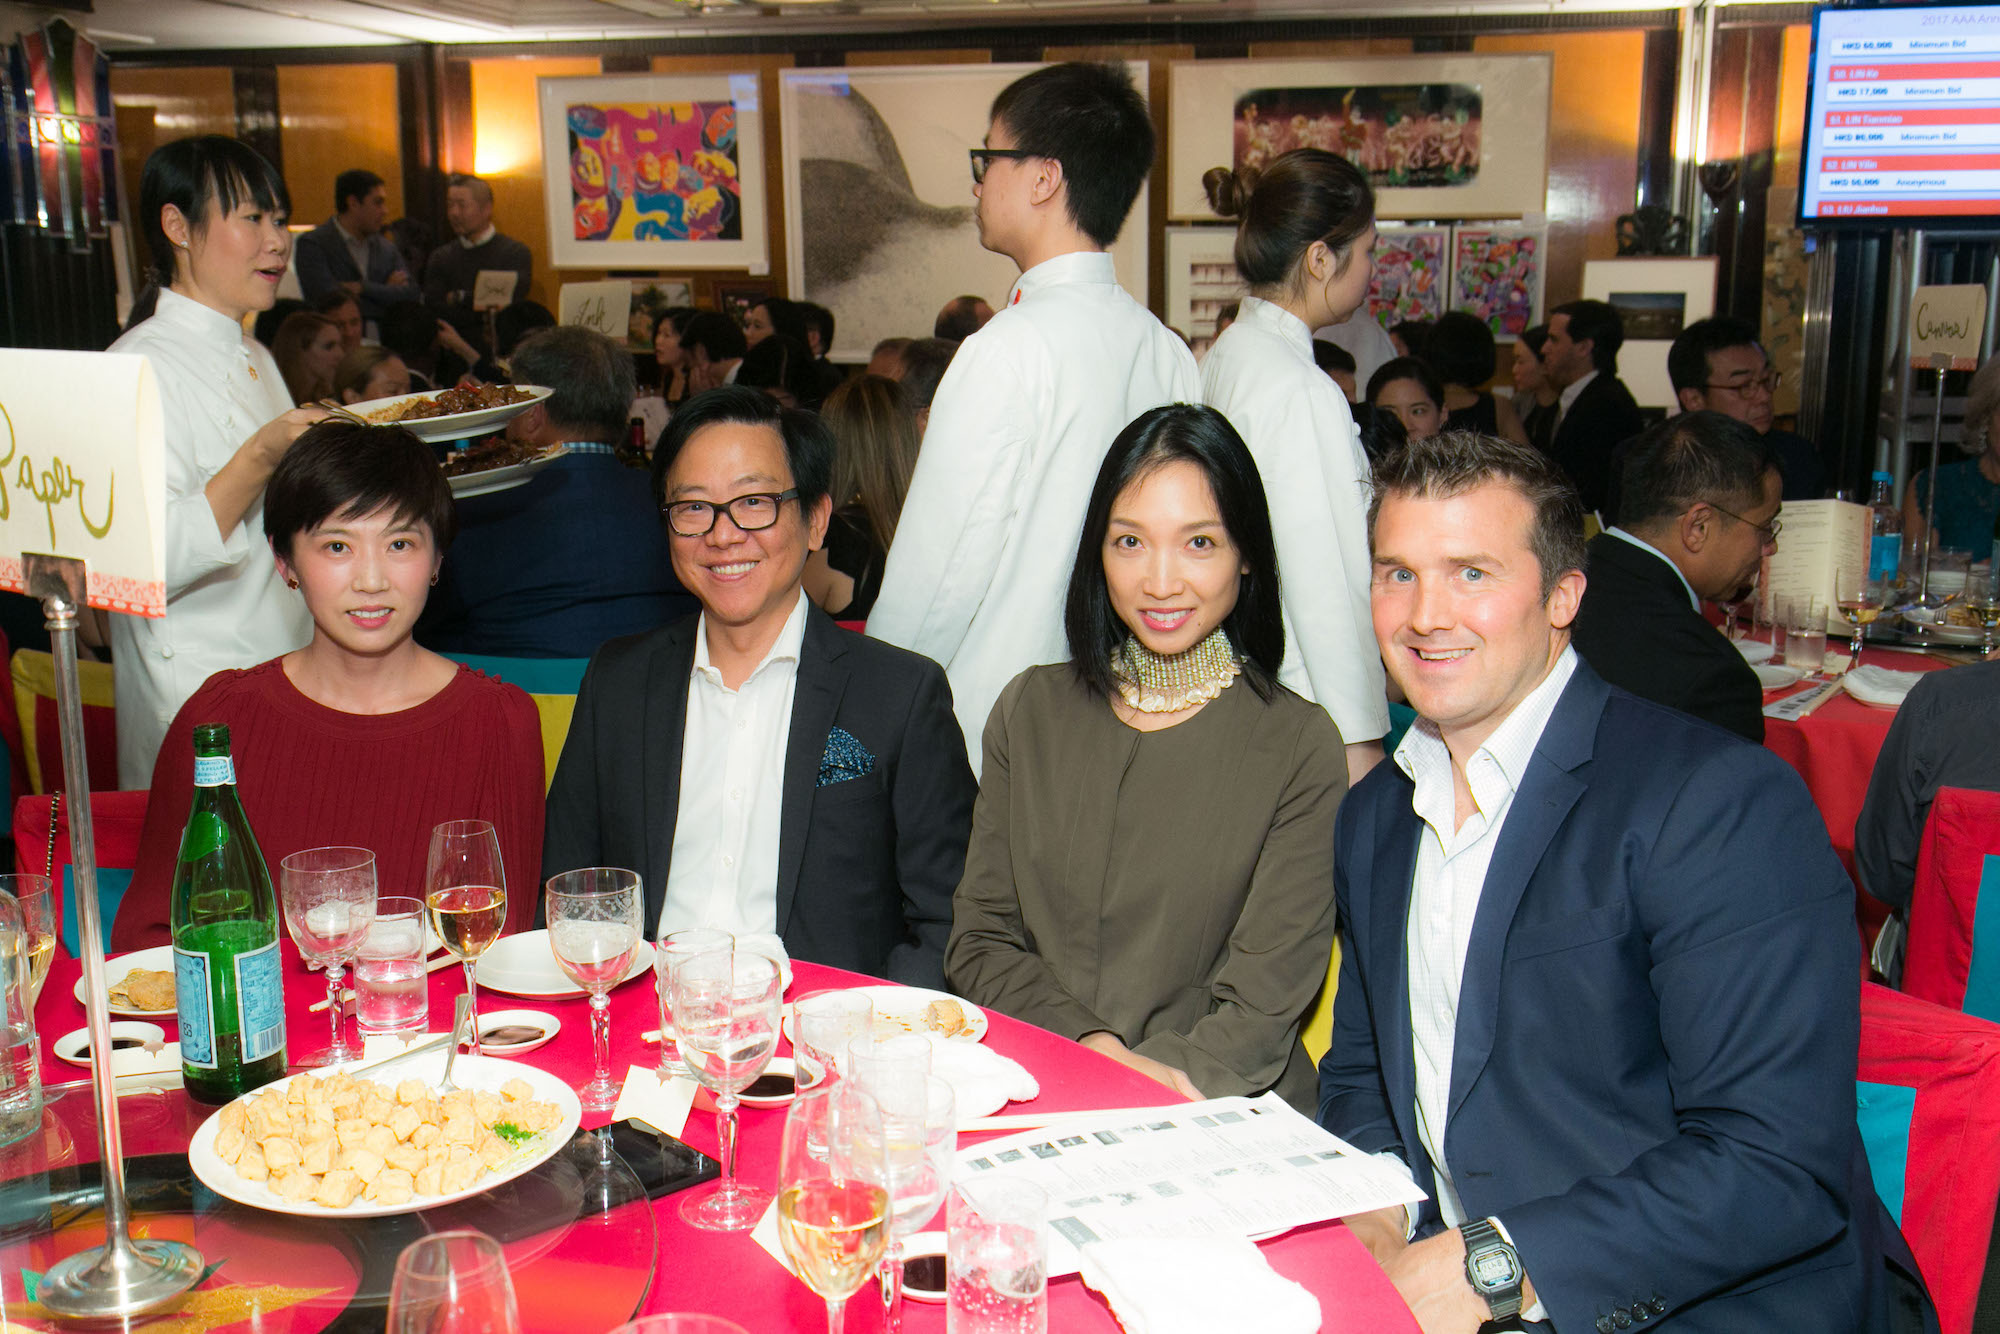 Crystal Chen, William Lim, Ann Cha, Tom Morrow